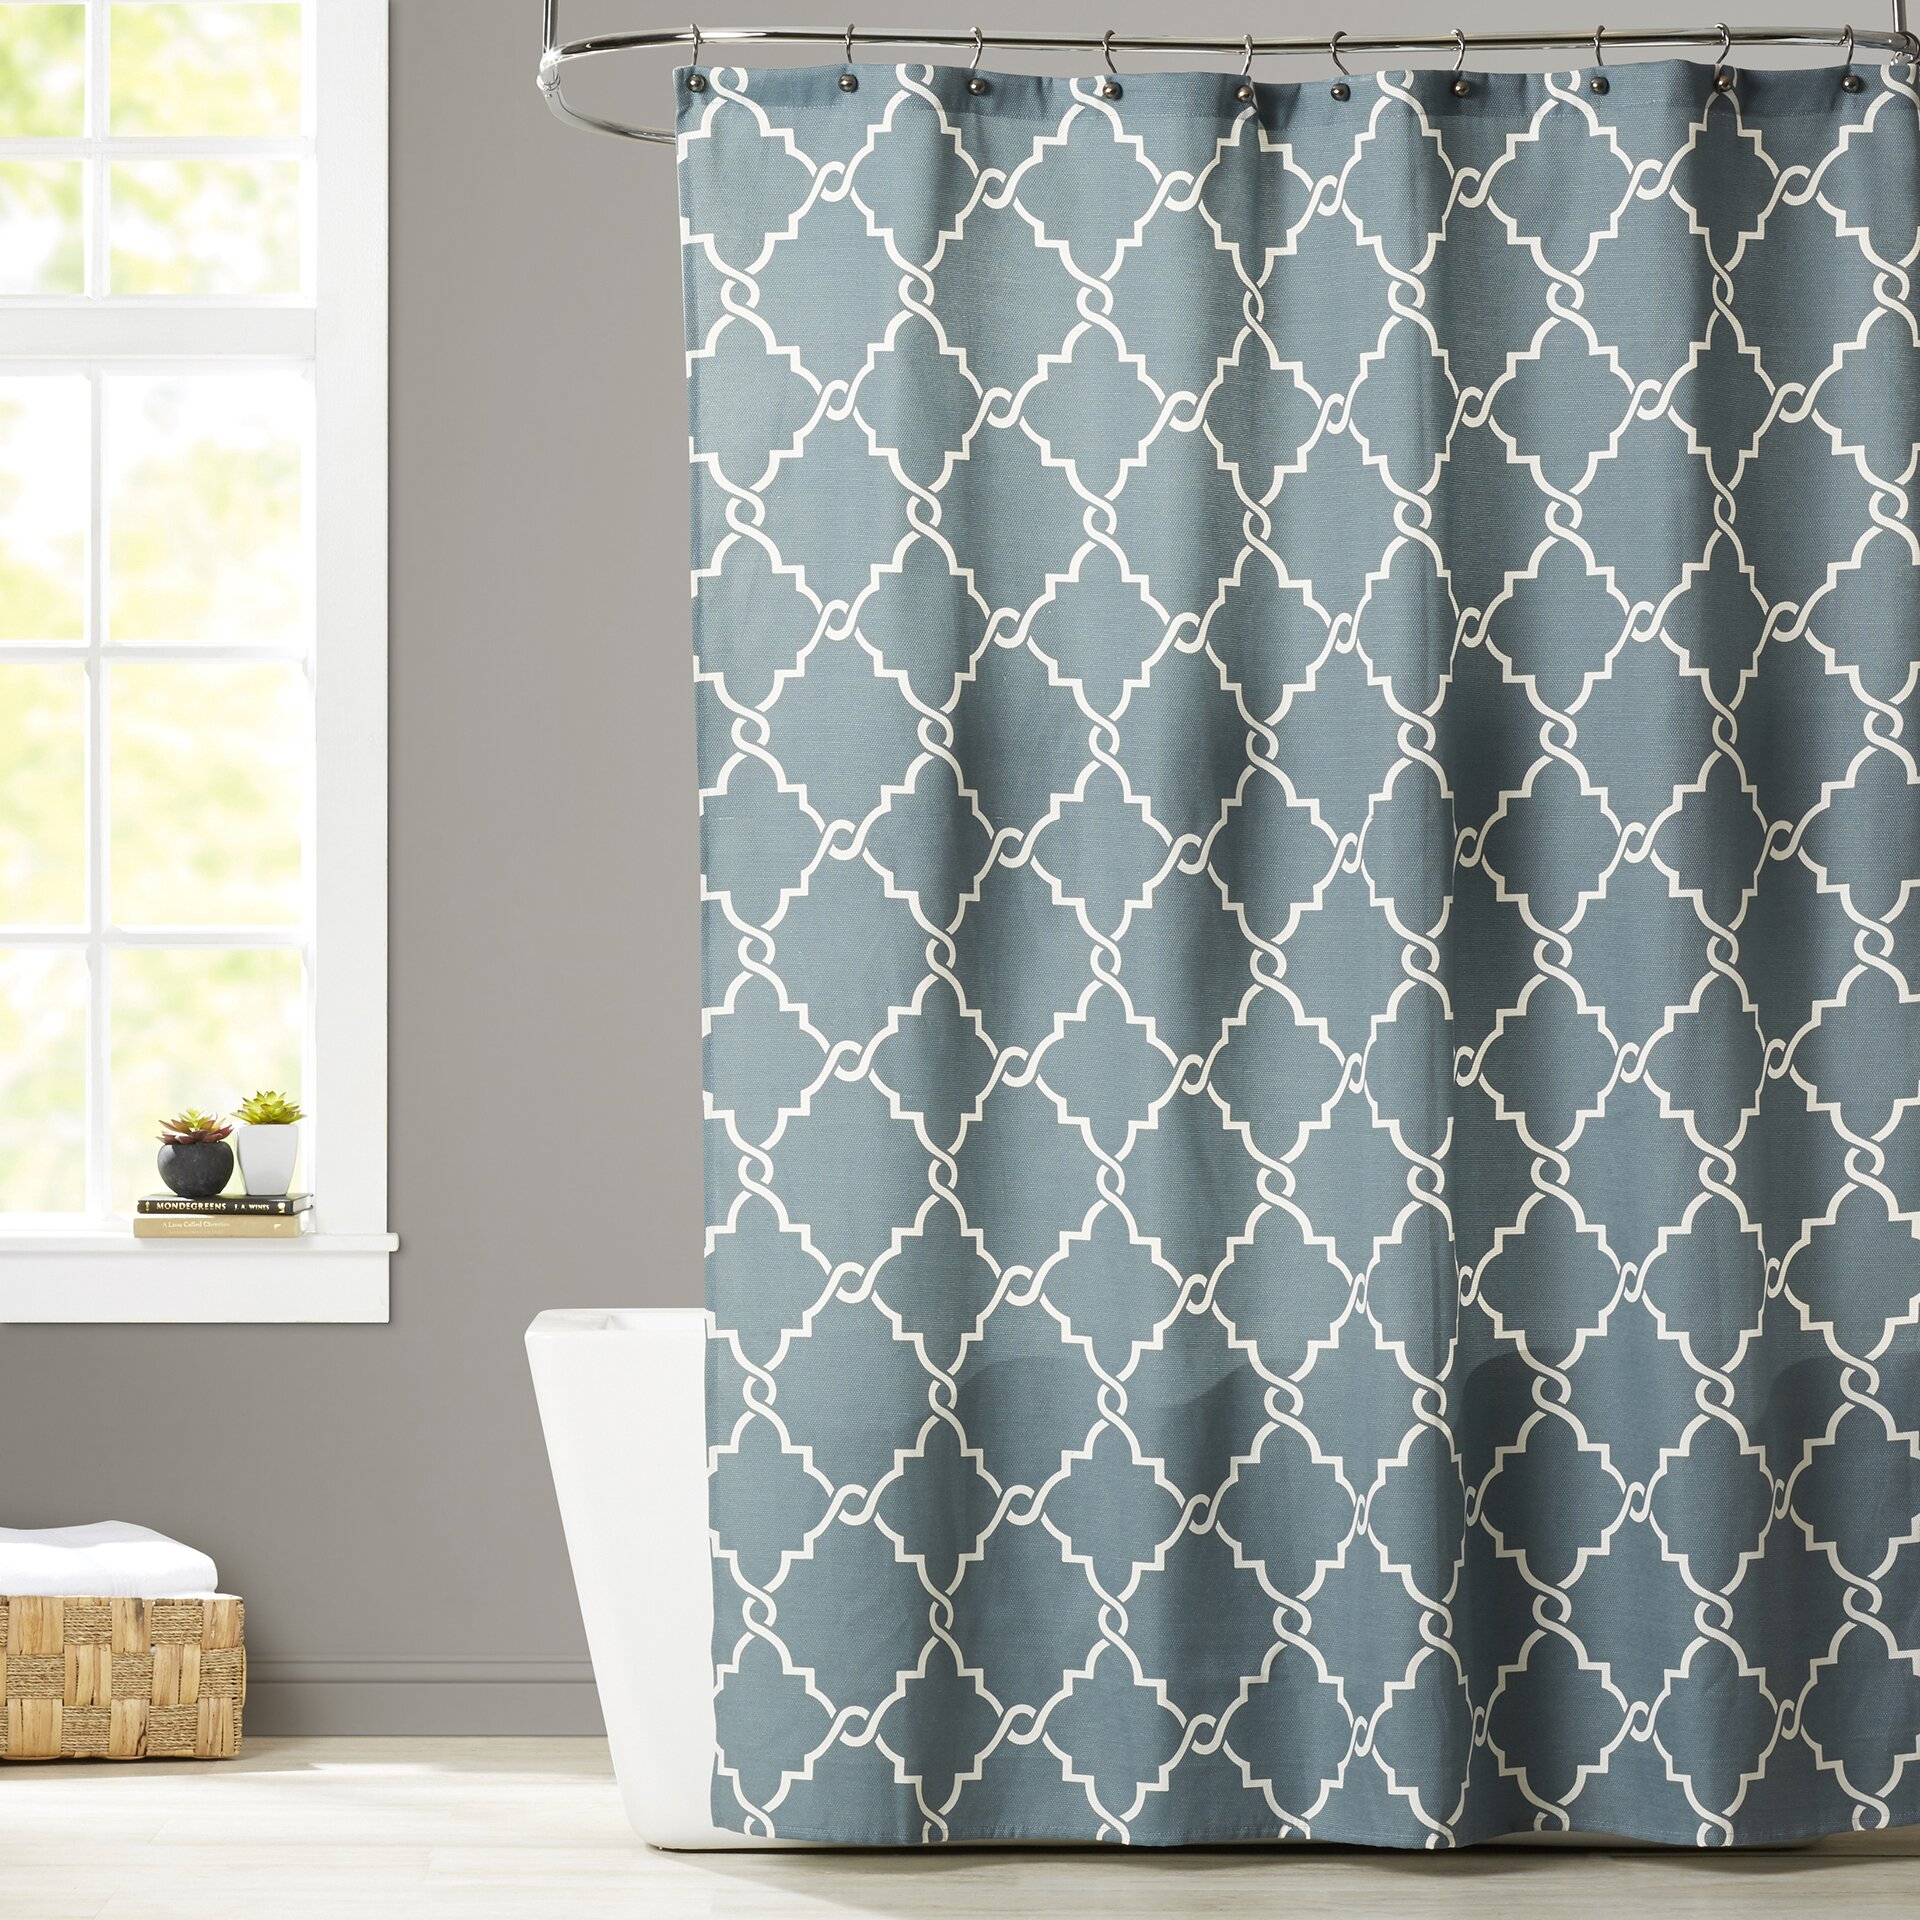 Chevron bathroom sets with shower curtain and rugs - Somerset Shower Curtain